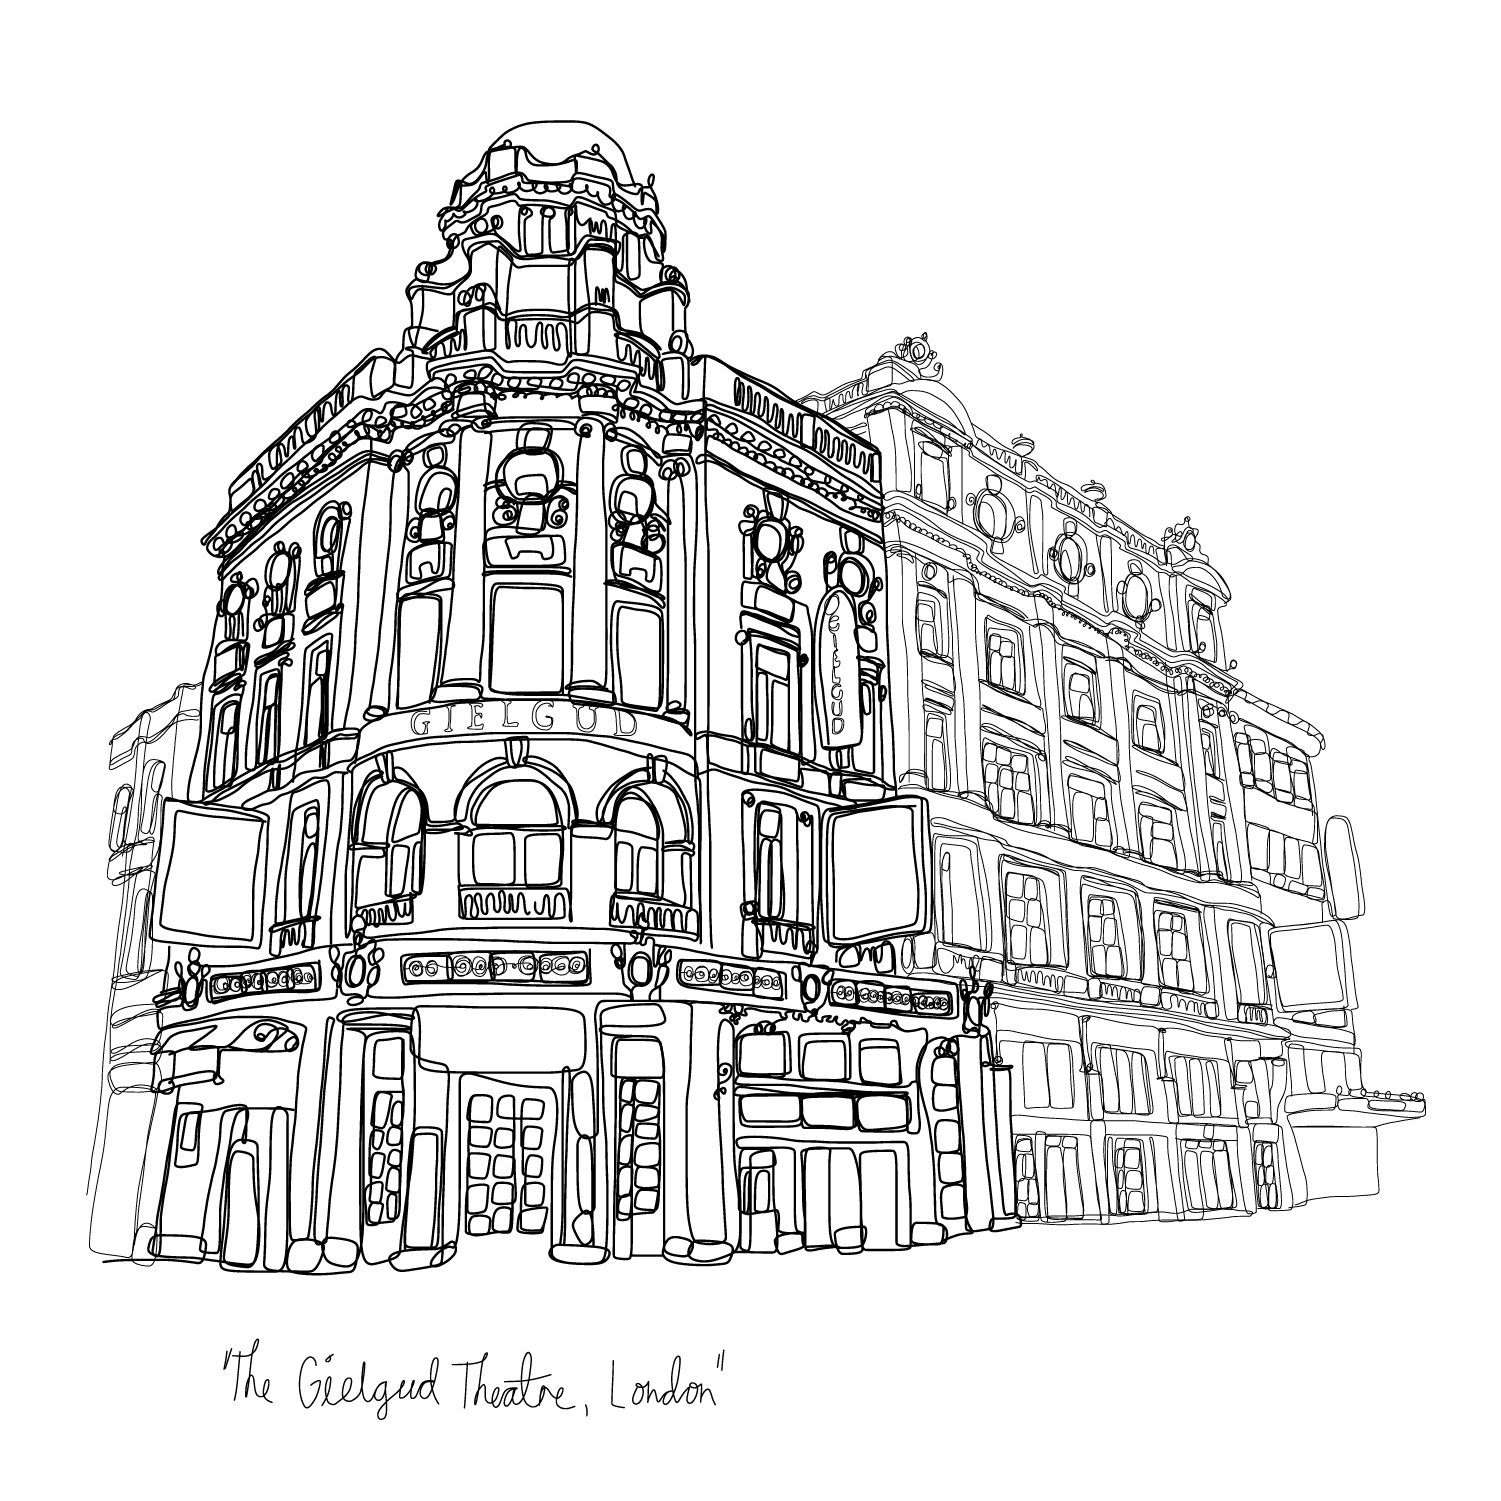 The Gielgud Theatre, London